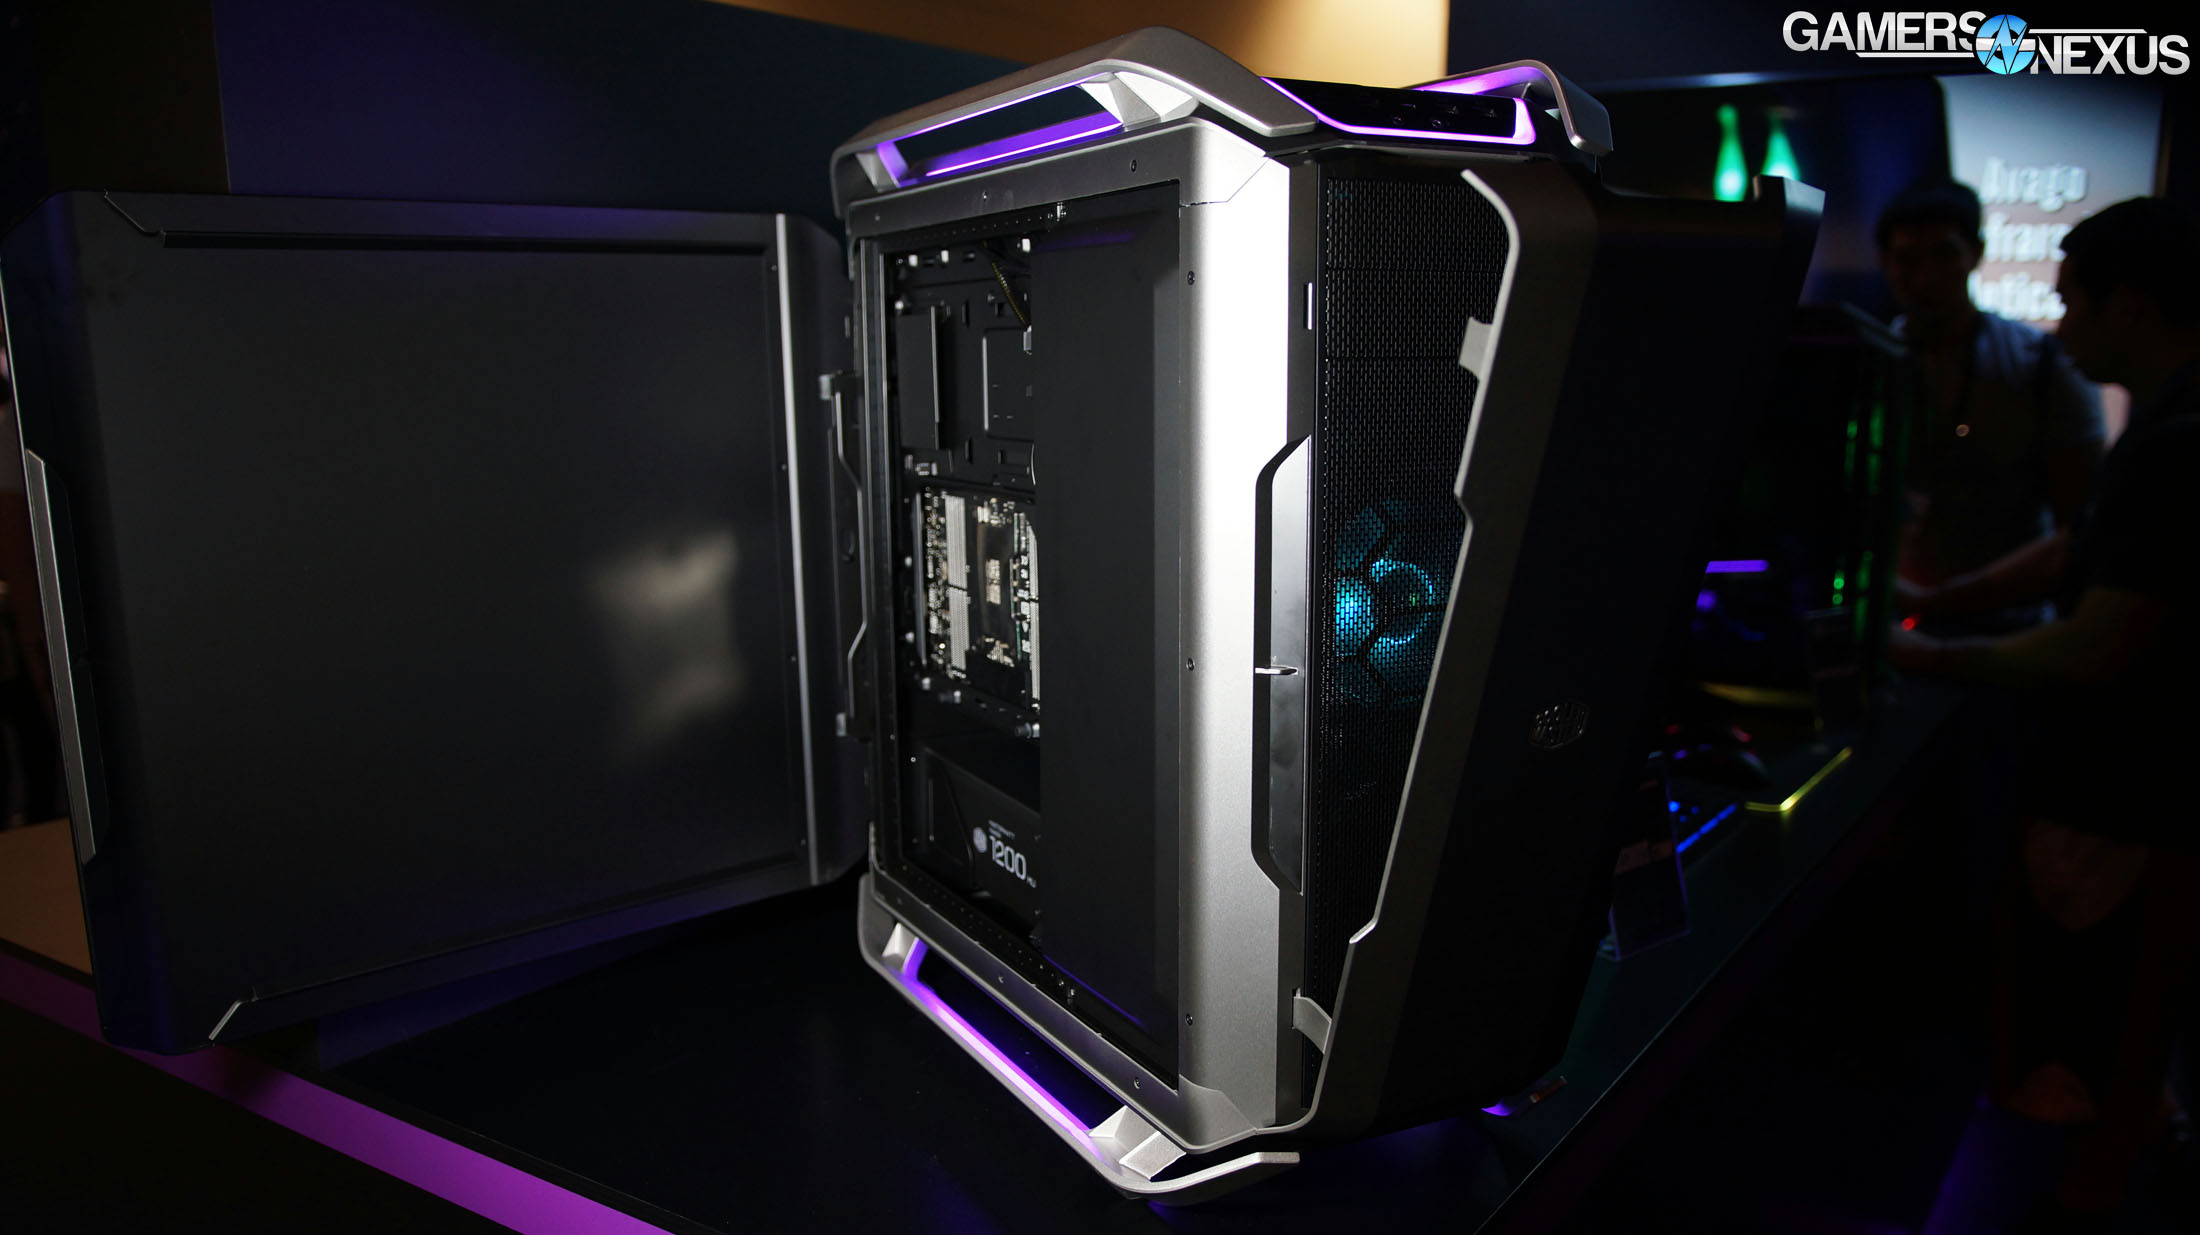 cooler master c700p review 2